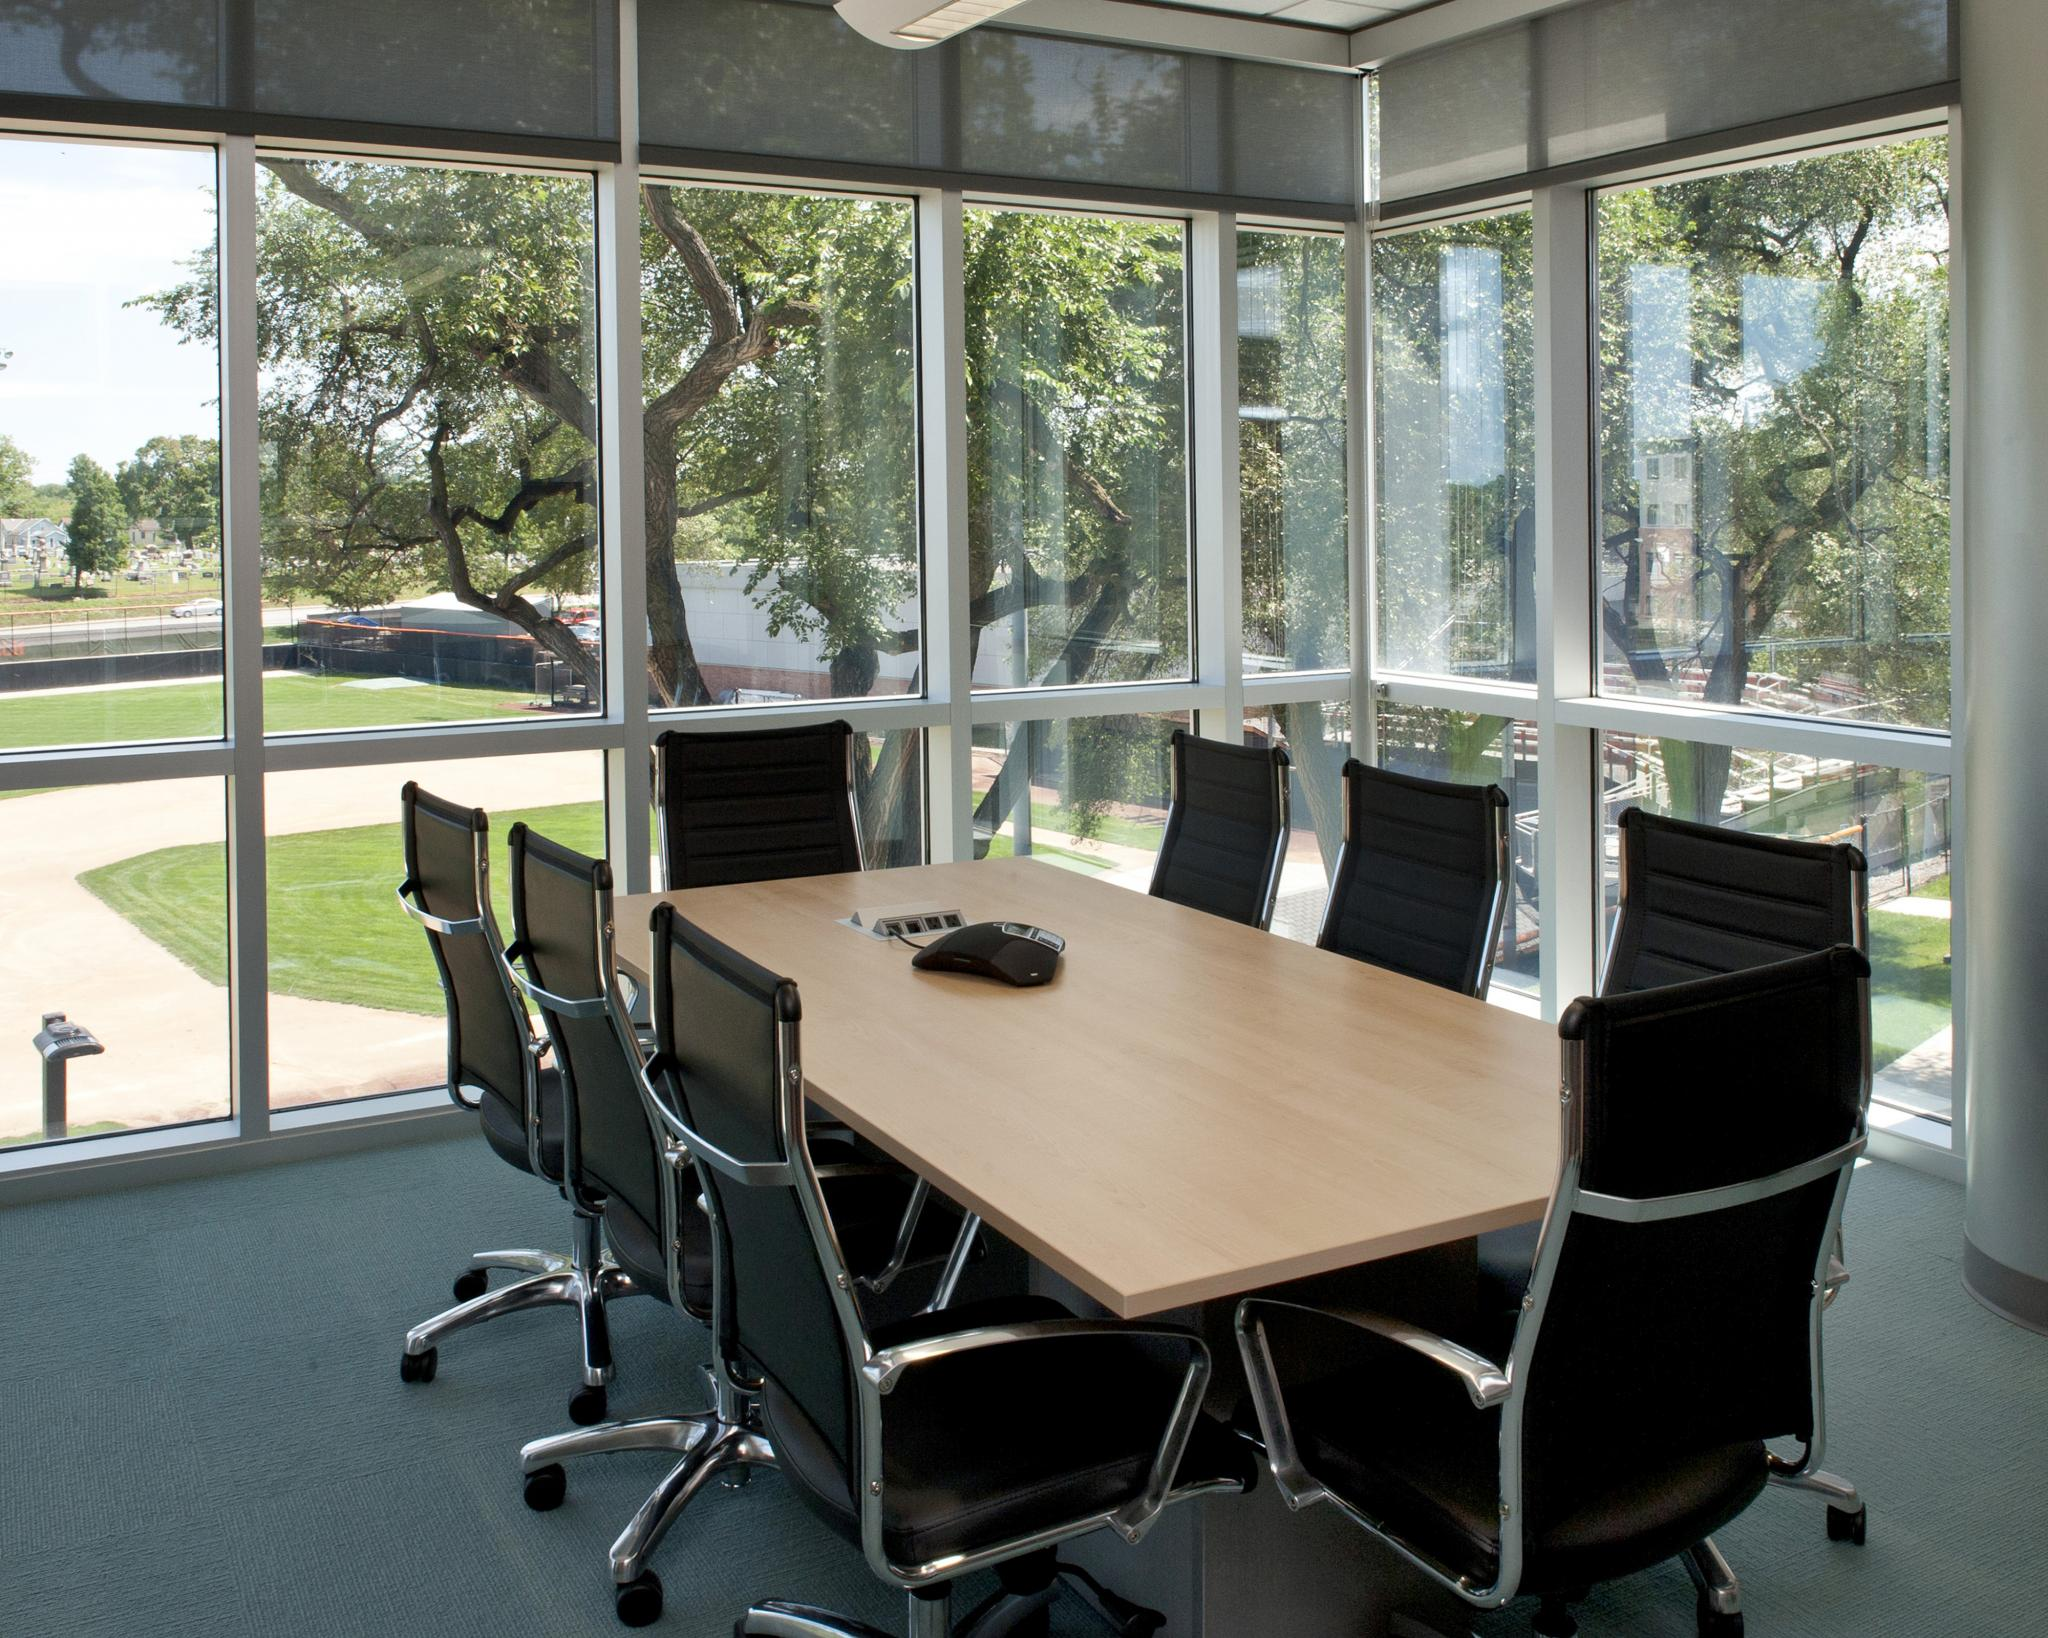 meeting room with windows and conference table